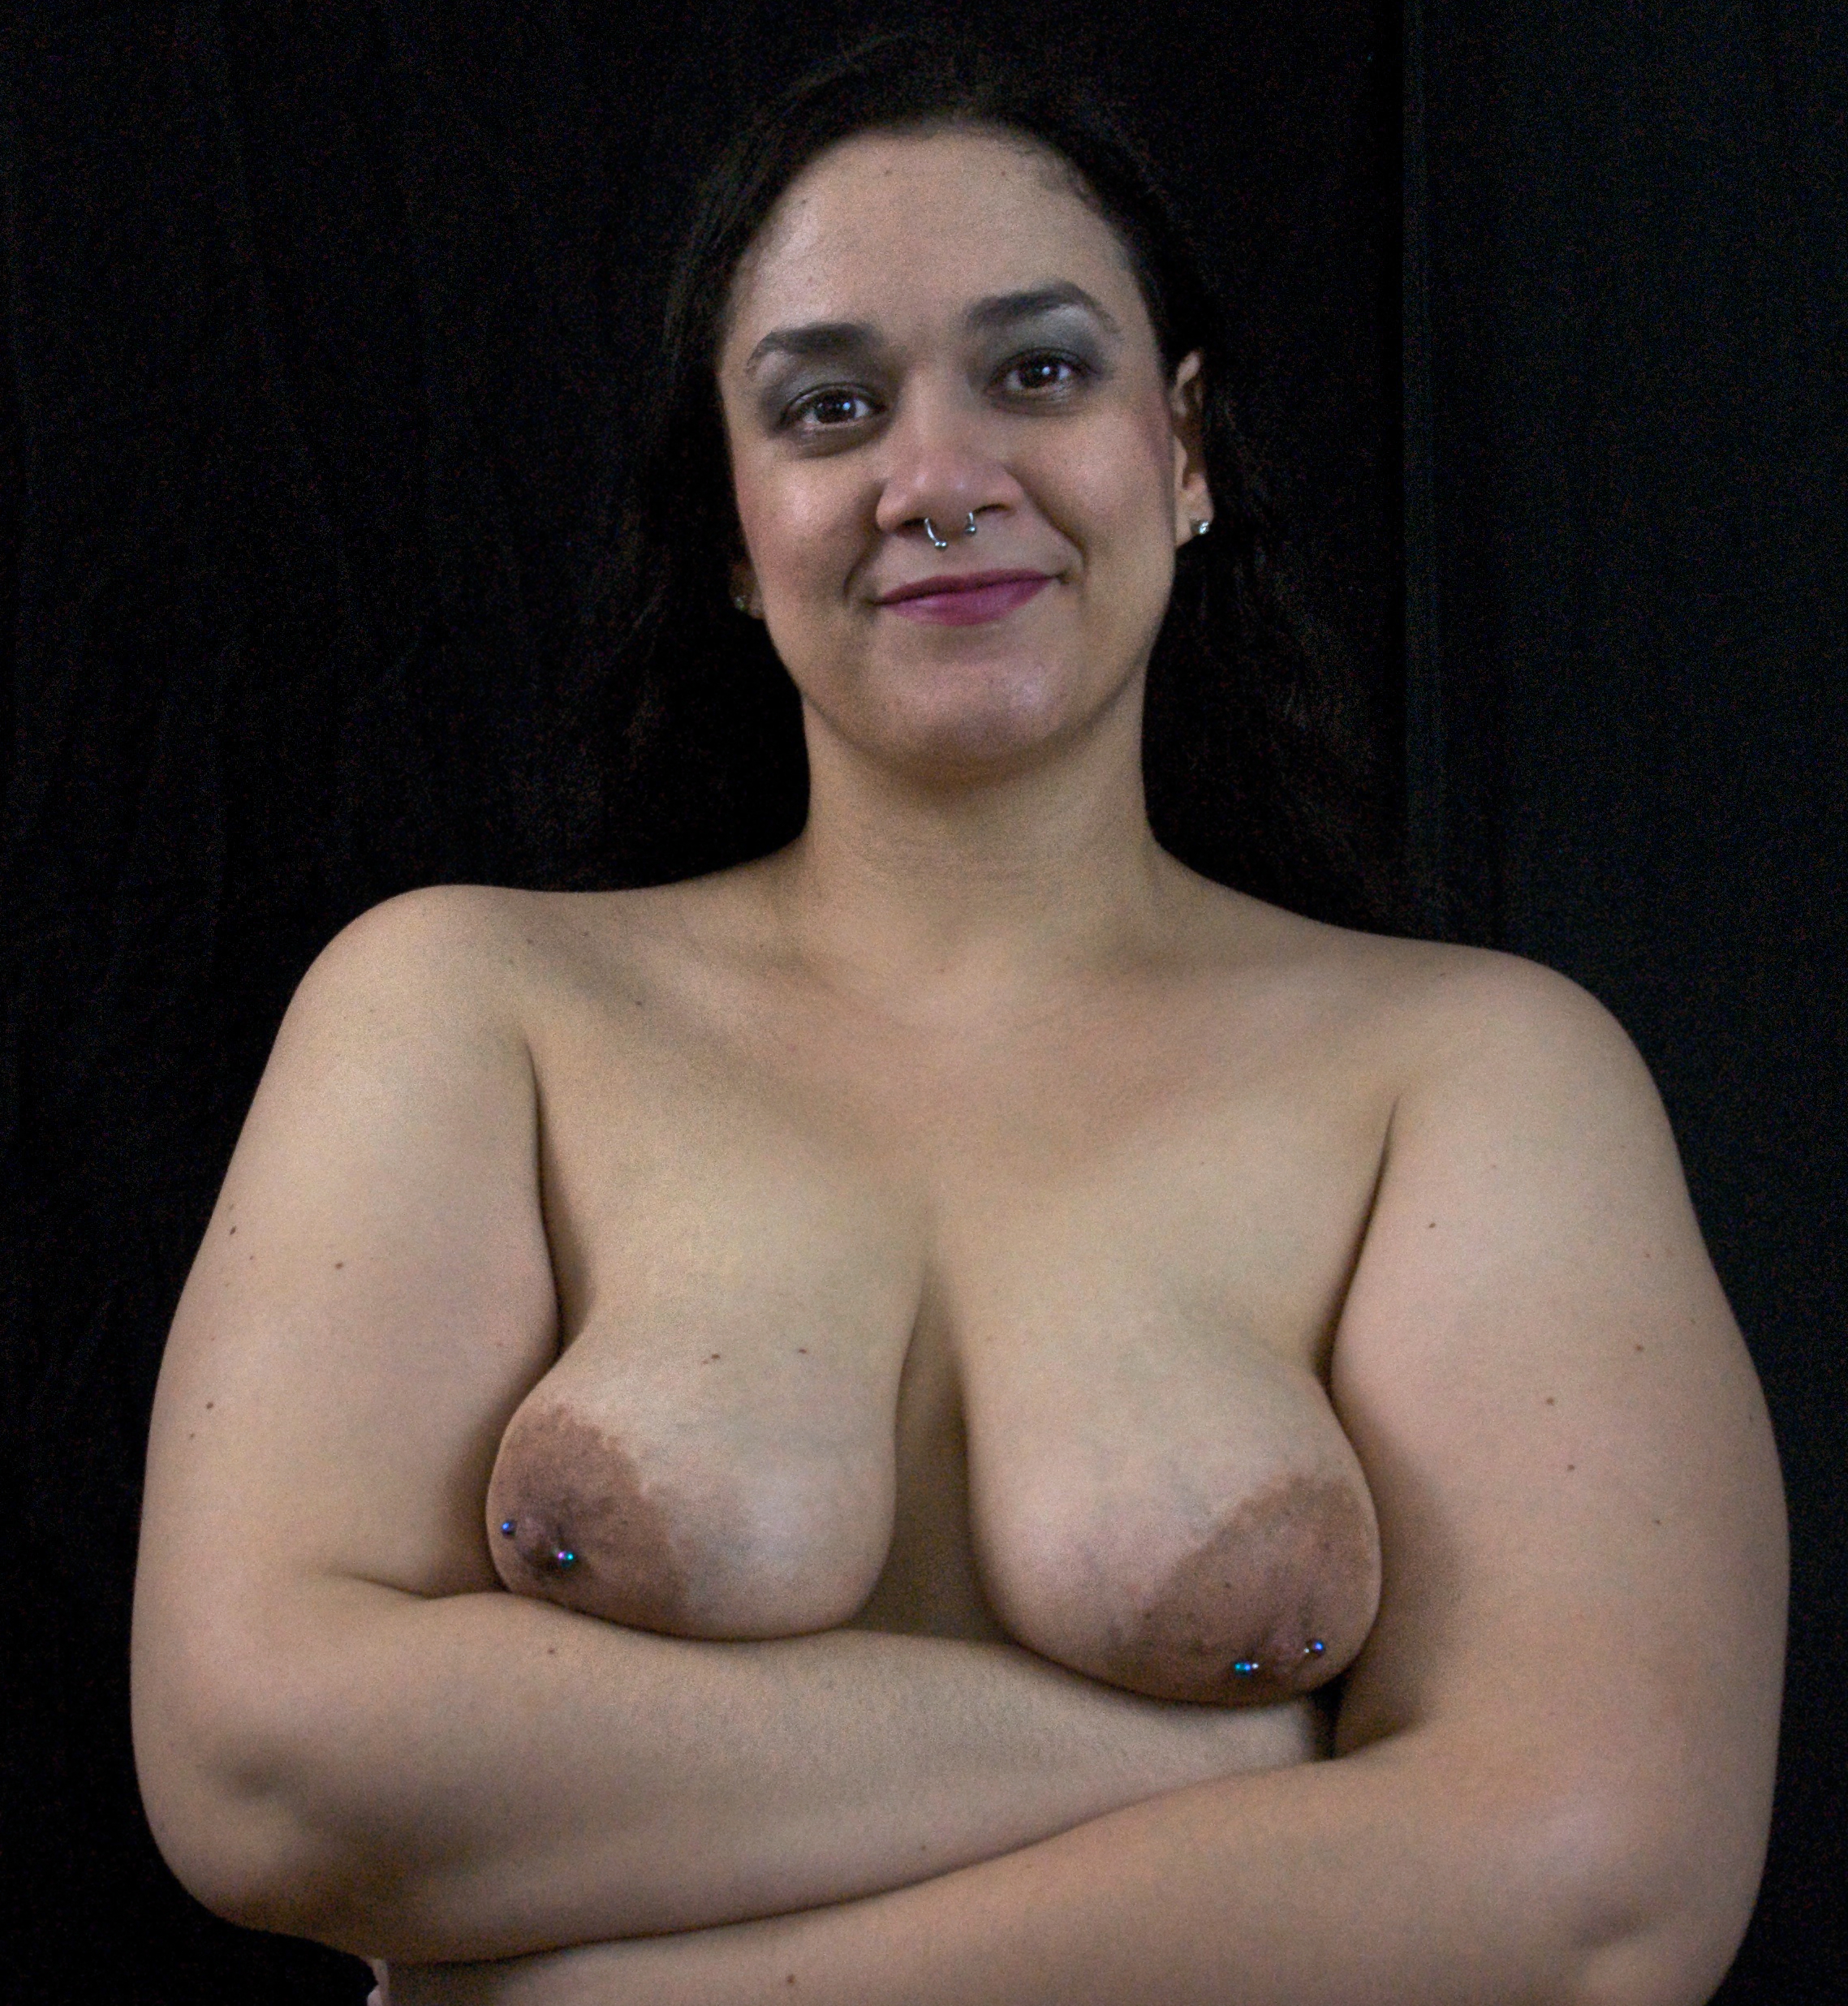 Smiling Samoan woman with pierced nipples